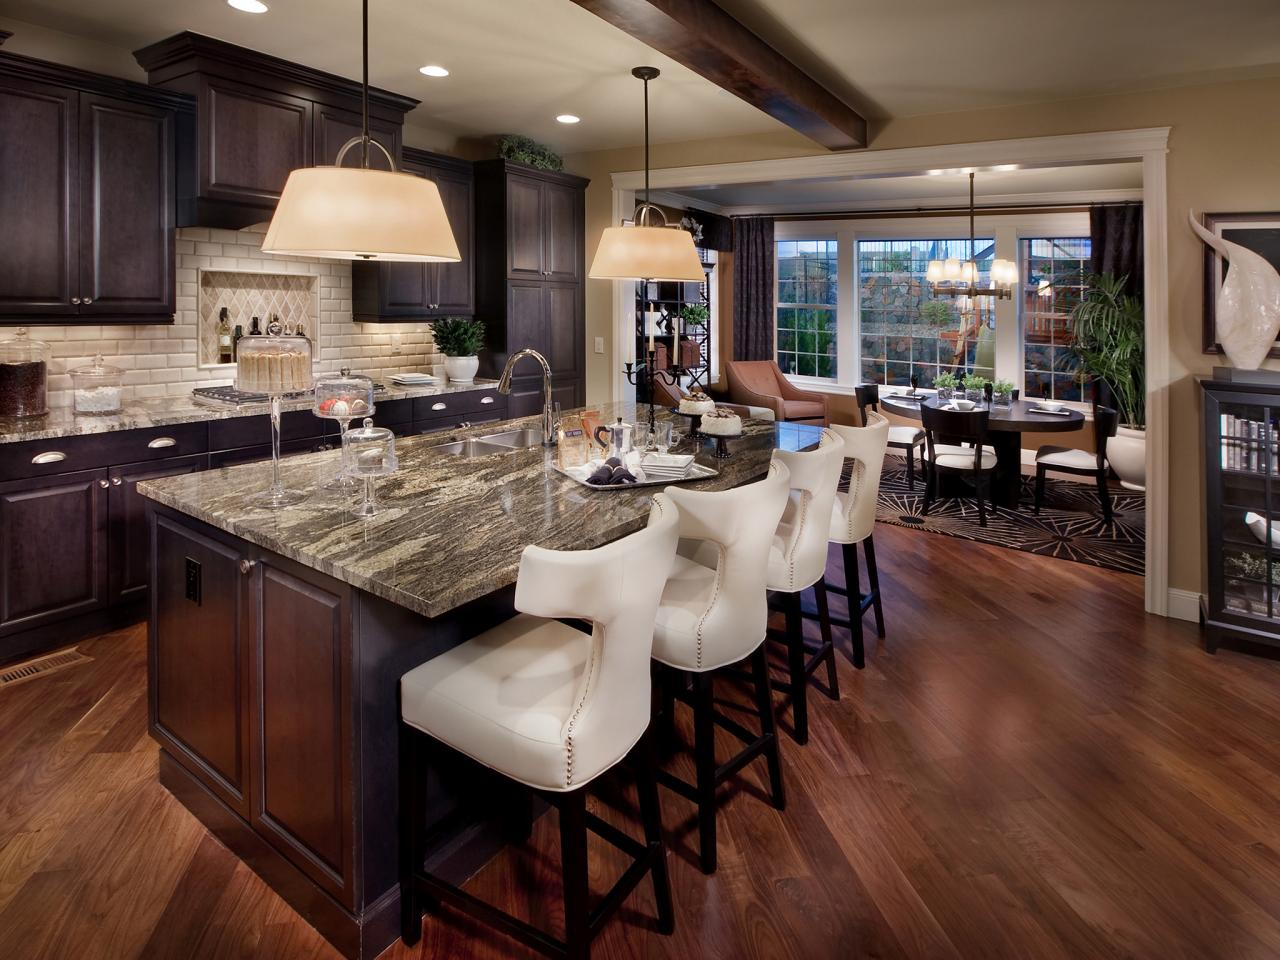 Black kitchen islands kitchen designs choose kitchen for Ideas for remodeling kitchen